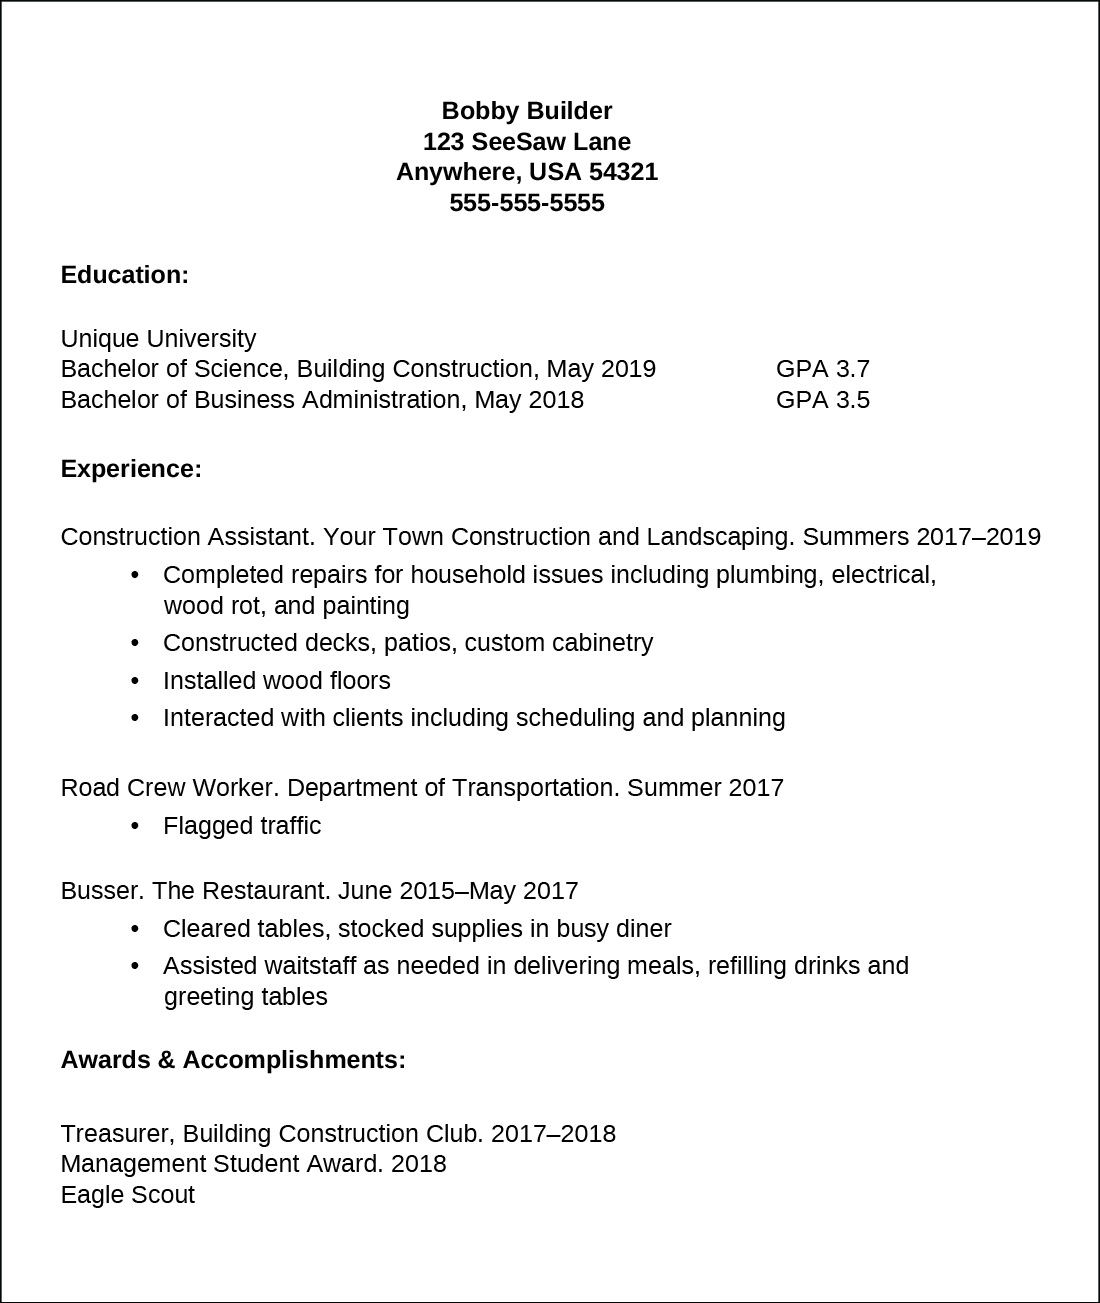 A sample résumé starts with the following information at the top, centered: Bobby Builder; 123 SeeSaw Lane; Anywhere, USA 54321; 555-555-5555. The first section is labeled Education. It lists Unique University; Bachelor of Science, Building Construction, May 2019, GPA 3.7; Bachelor of Business Administration, May 2018, GPA 3.5. The next section is labeled Experience. It lists Construction Assistant. Your Town Construction and Landscaping. Summers 2017 to 2019. Below this line are bullet points: Completed repairs for household issues including plumbing, electrical, wood rot, and painting; Constructed decks, patios, custom cabinetry; Installed wood floors; Interacted with clients including scheduling and planning. Next is Road Crew Worker. Department of Transportation. Summer 2017. Below this line is the bullet Flagged traffic. Next is Busser. The Restaurant. June 2015 to May 2017. Below this line are the bullets Cleared tables, stocked supplies in busy diner; Assisted wait staff as needed in delivering meals, refilling drinks, and greeting tables. The next section is Awards and Accomplishments. It lists Treasurer, Building Construction Club. 2017 to 2018; Management Student Award. 2018; Eagle Scout.